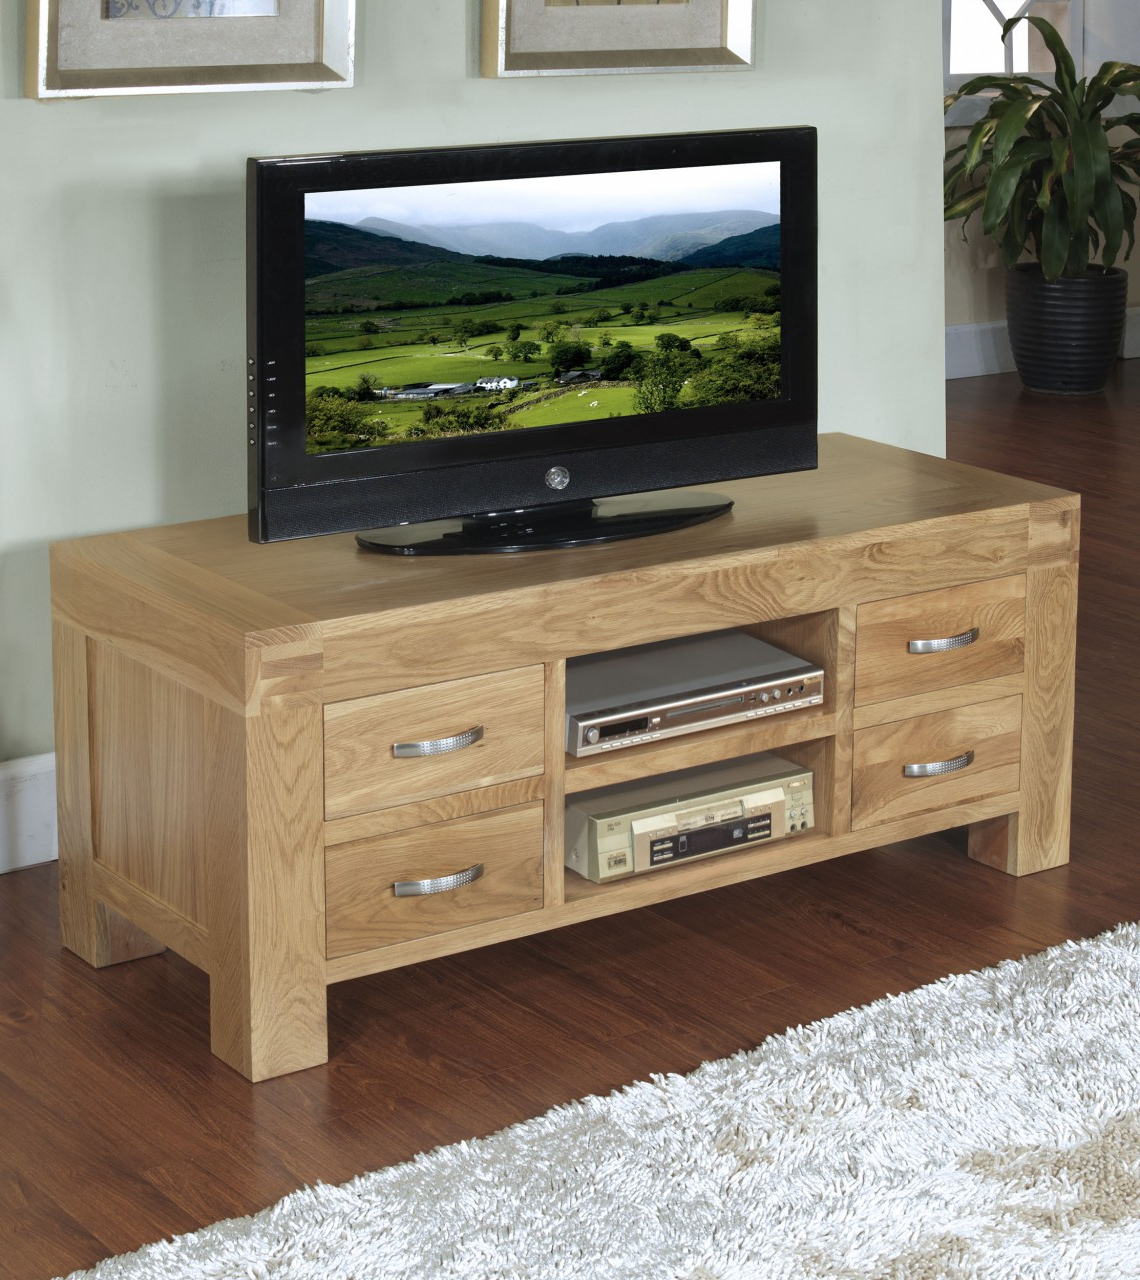 Popular Reclaimed Wood Tv Stands Natural Oak Stand Consoles For Flat Screens With Oak Tv Stands For Flat Screens (Gallery 14 of 20)